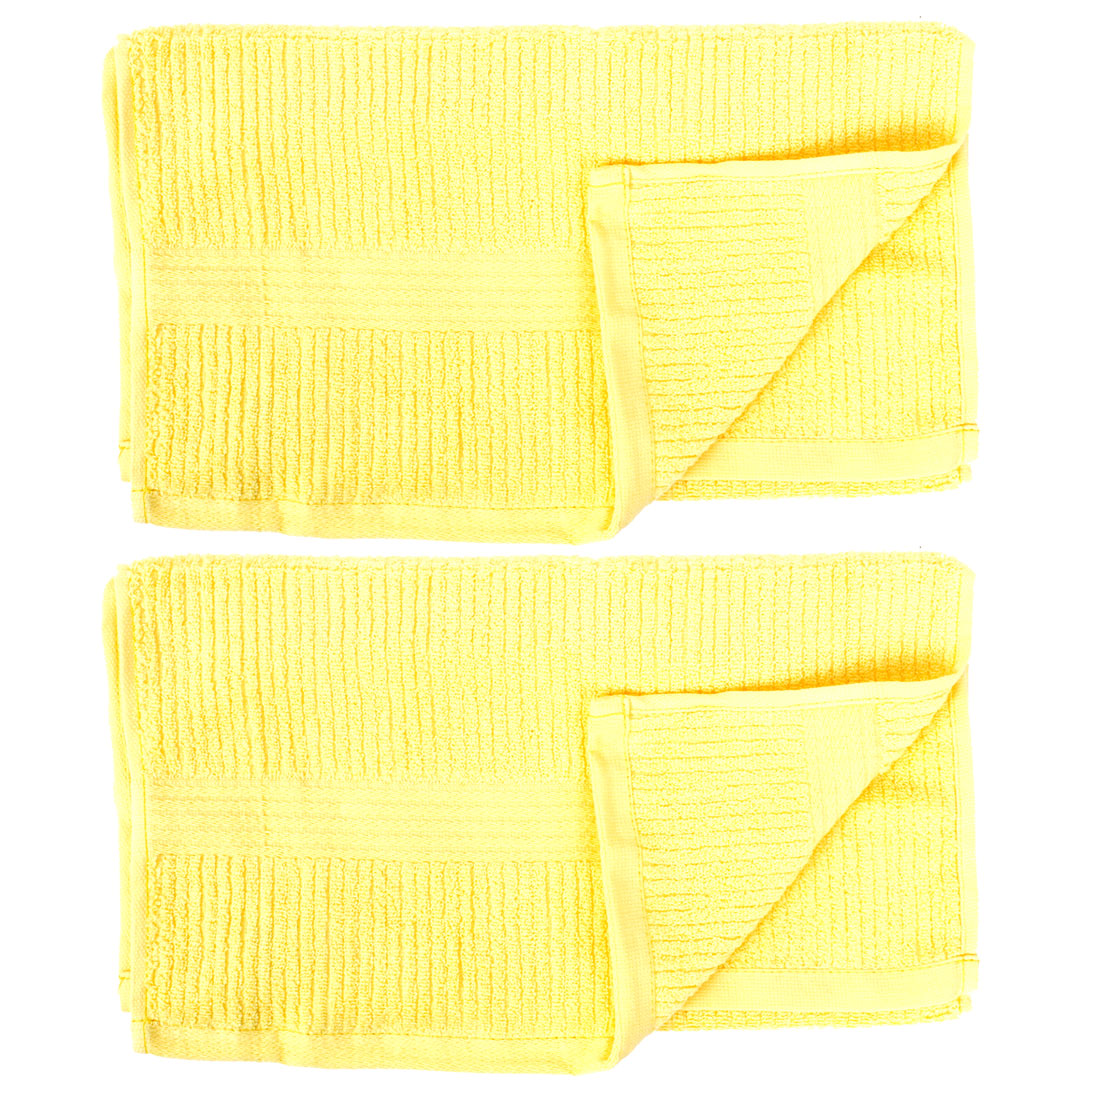 2 Pcs Cotton Blend Stripe Pattern Face Hand Washing Towel Washcloths Yellow